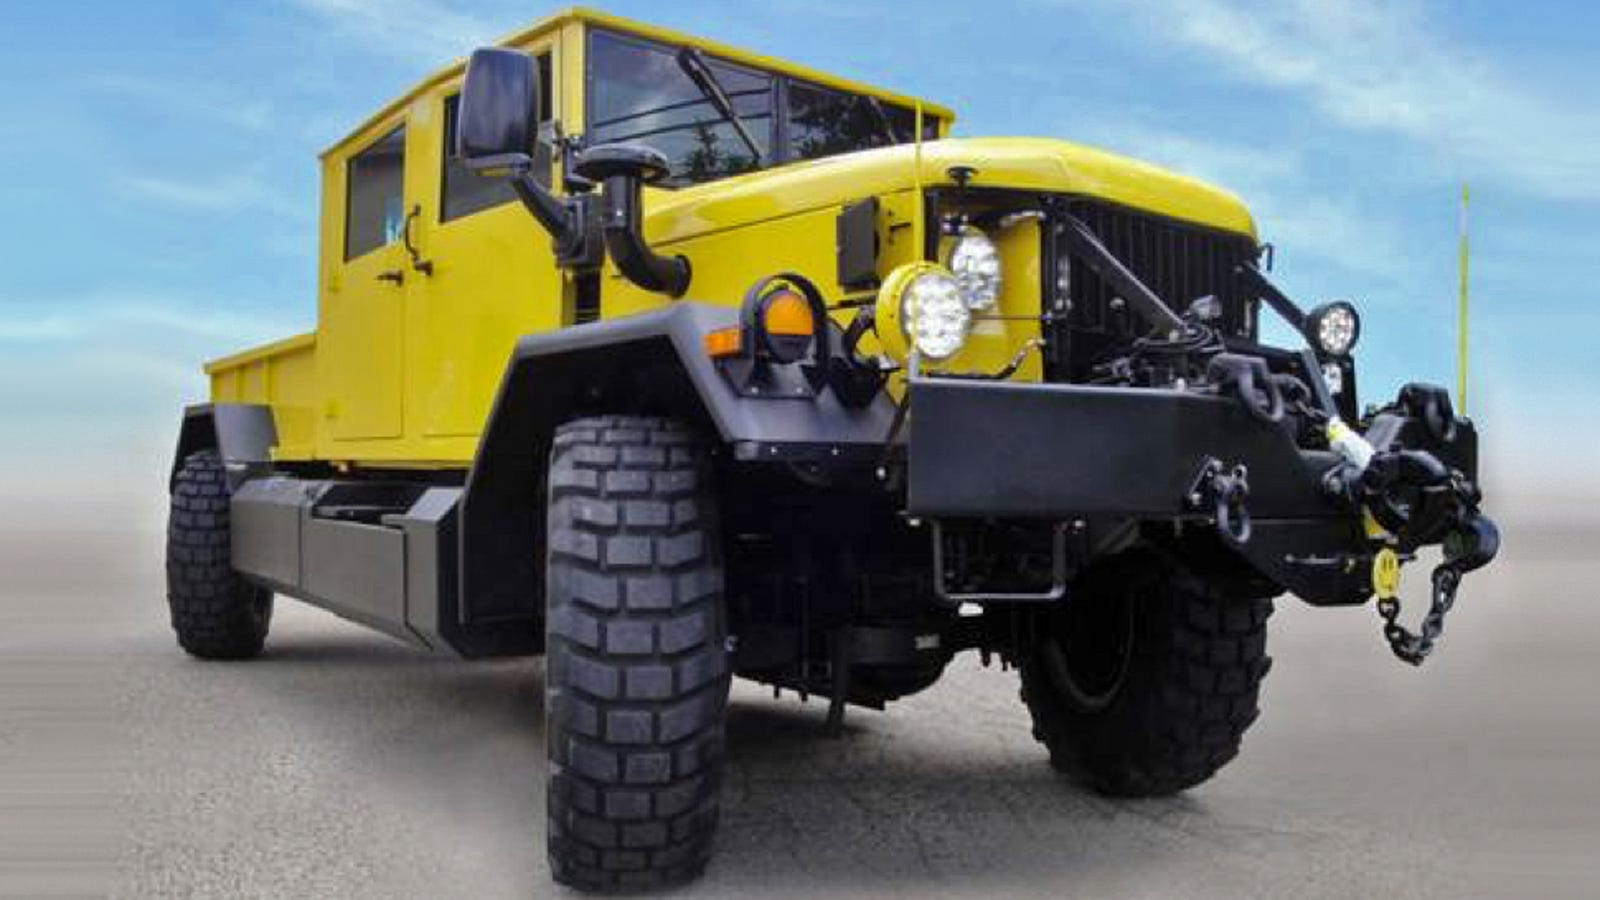 This Restomod Army Truck Is The Cleanest And Coolest 'Deuce And A Half'